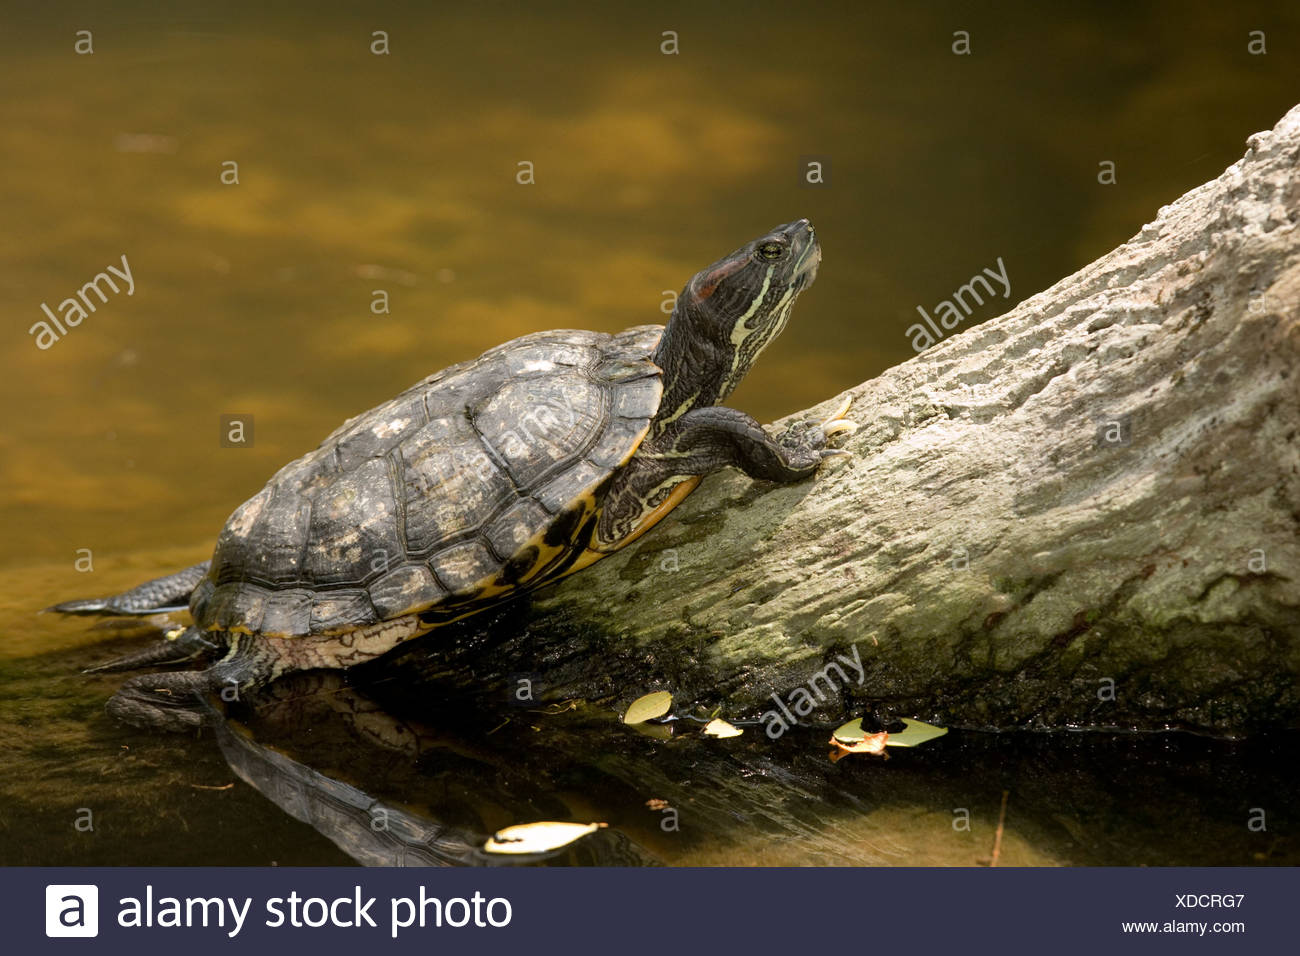 Closeup of an unidentified turtle swimming to a log. - Stock Image